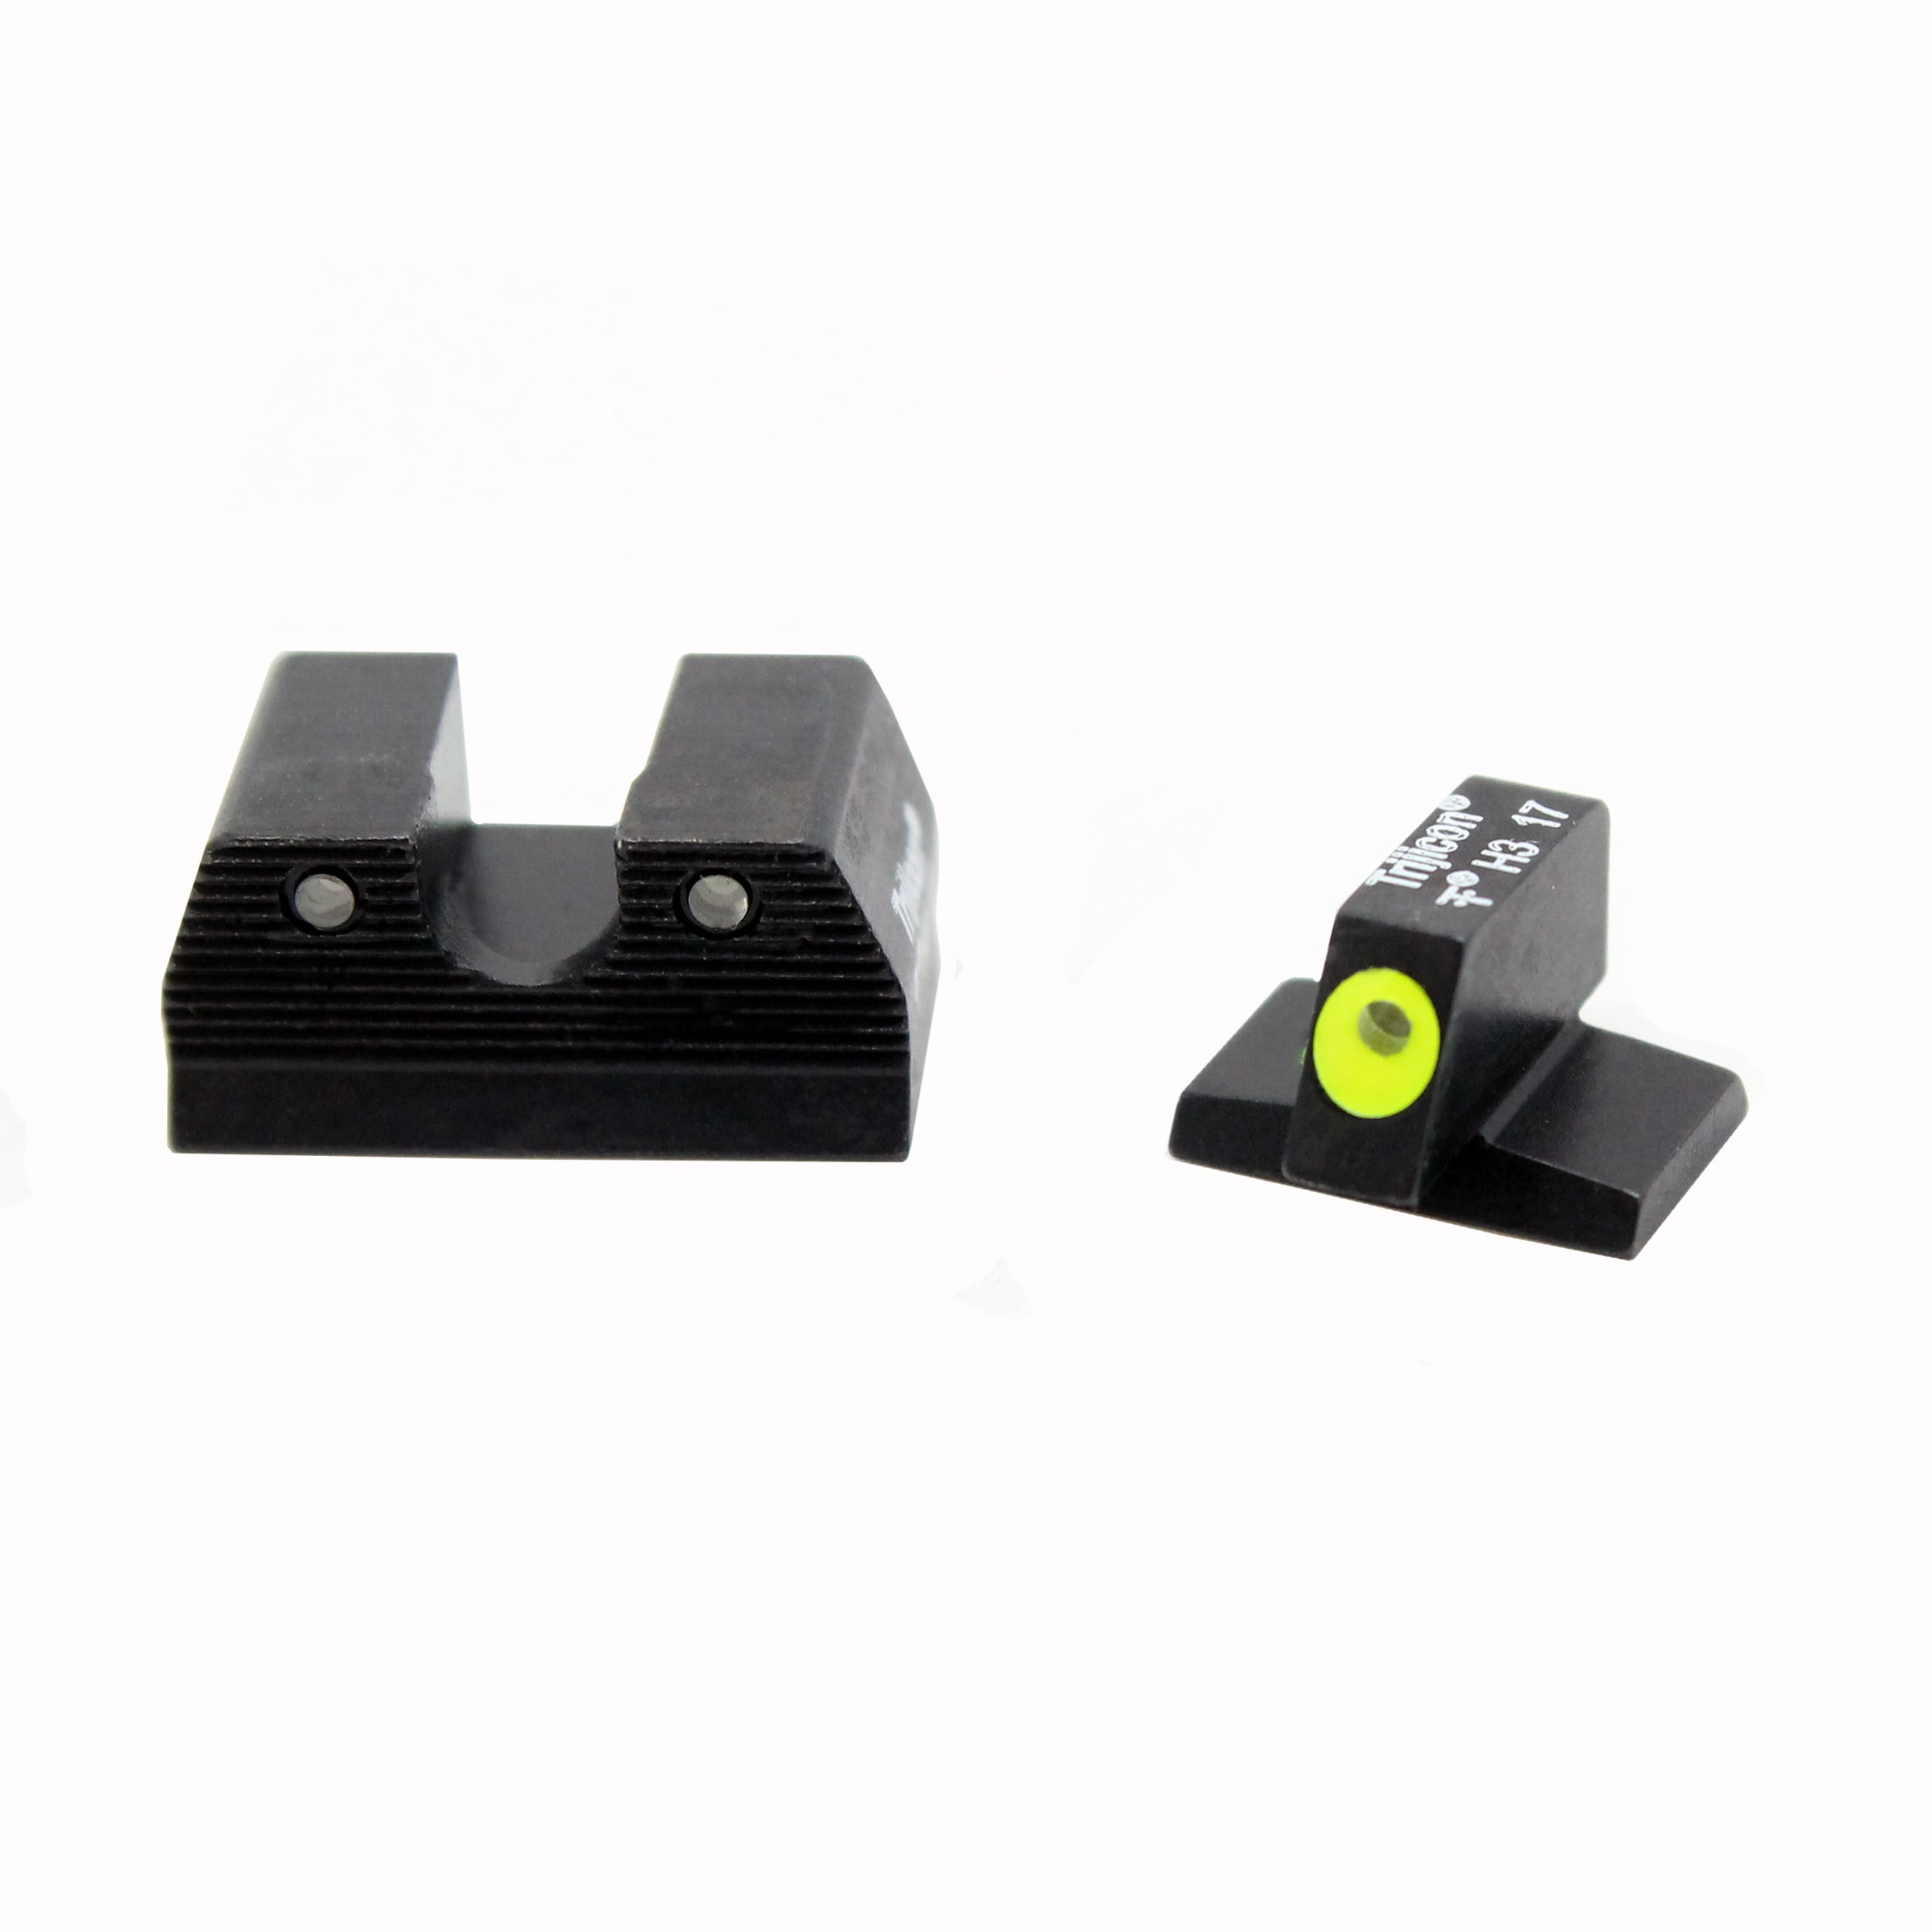 Trijicon HD XR Night Sight Set FNH FNX-45 and FNP-45, Yellow Front Outline Lamp by Trijicon